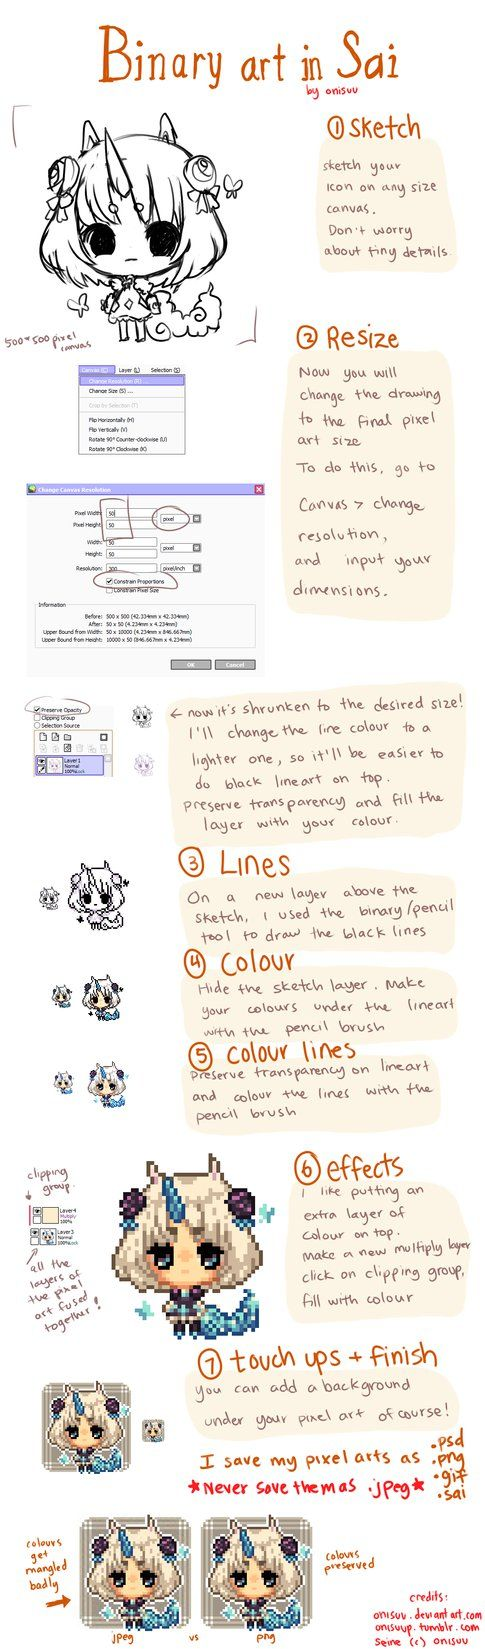 :Pixel Art Tutorial- drawing icons in SAI by onisuu on DeviantArt: